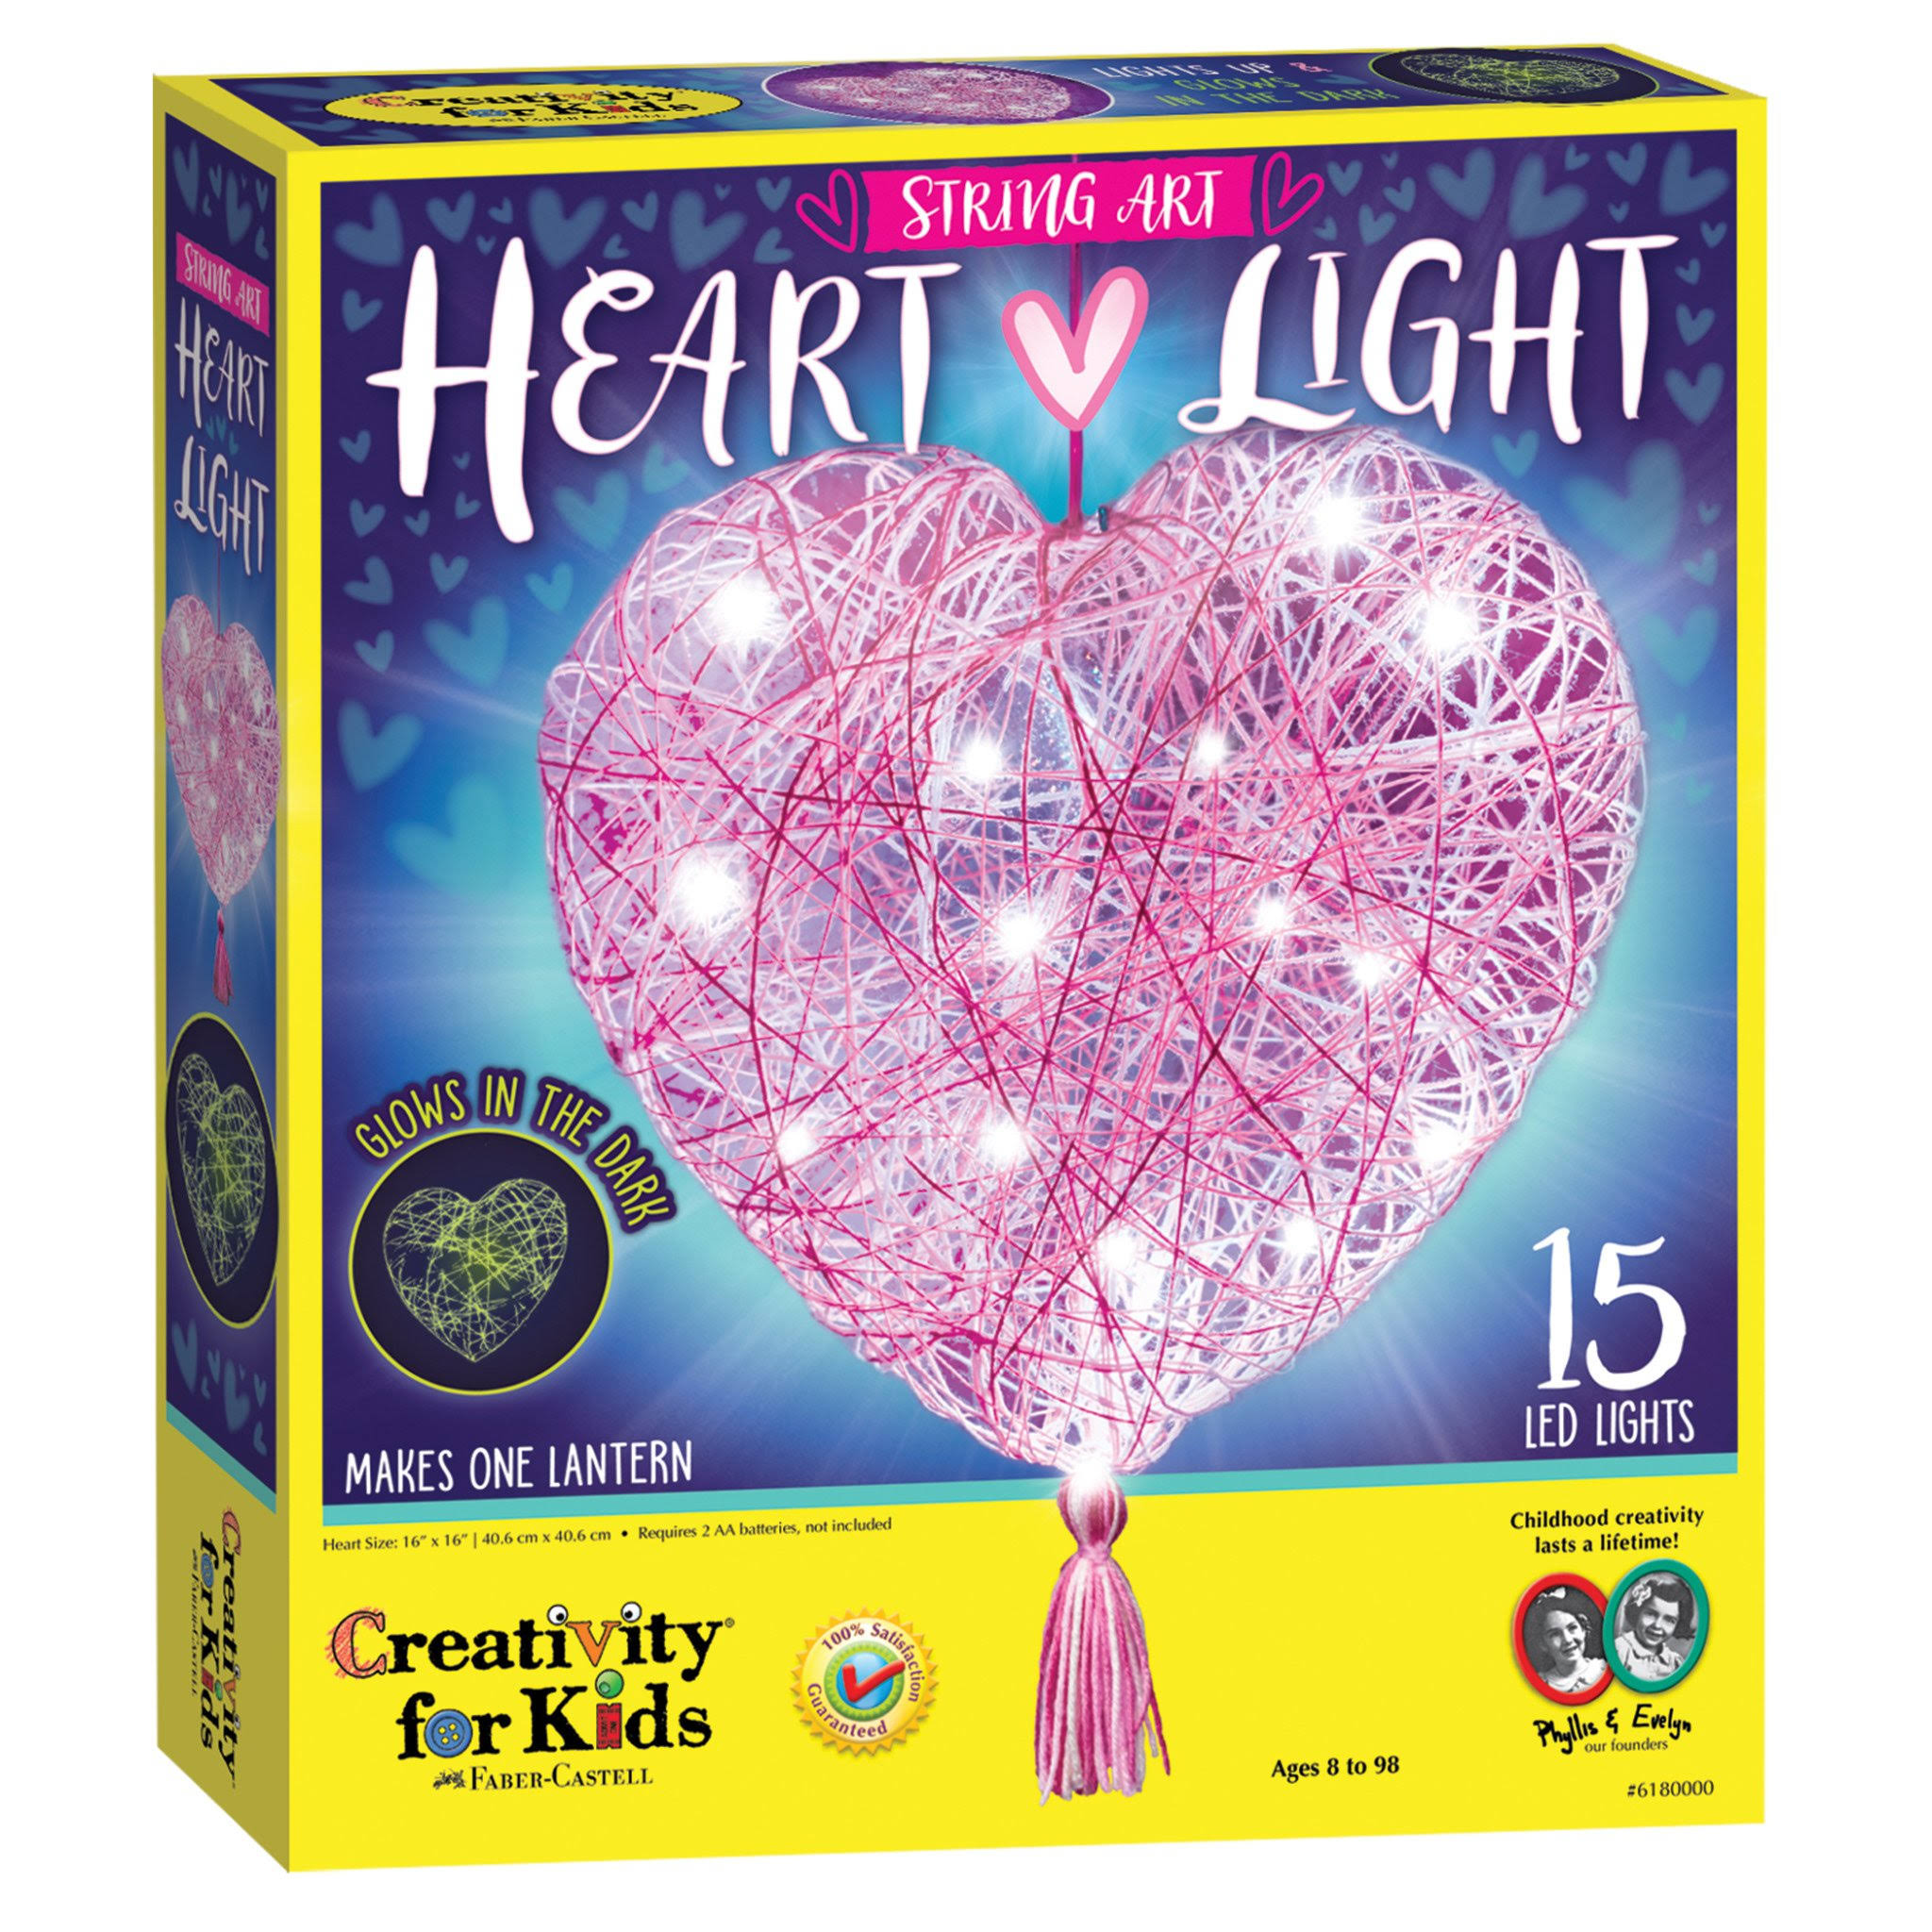 String Art Heart Light Kit